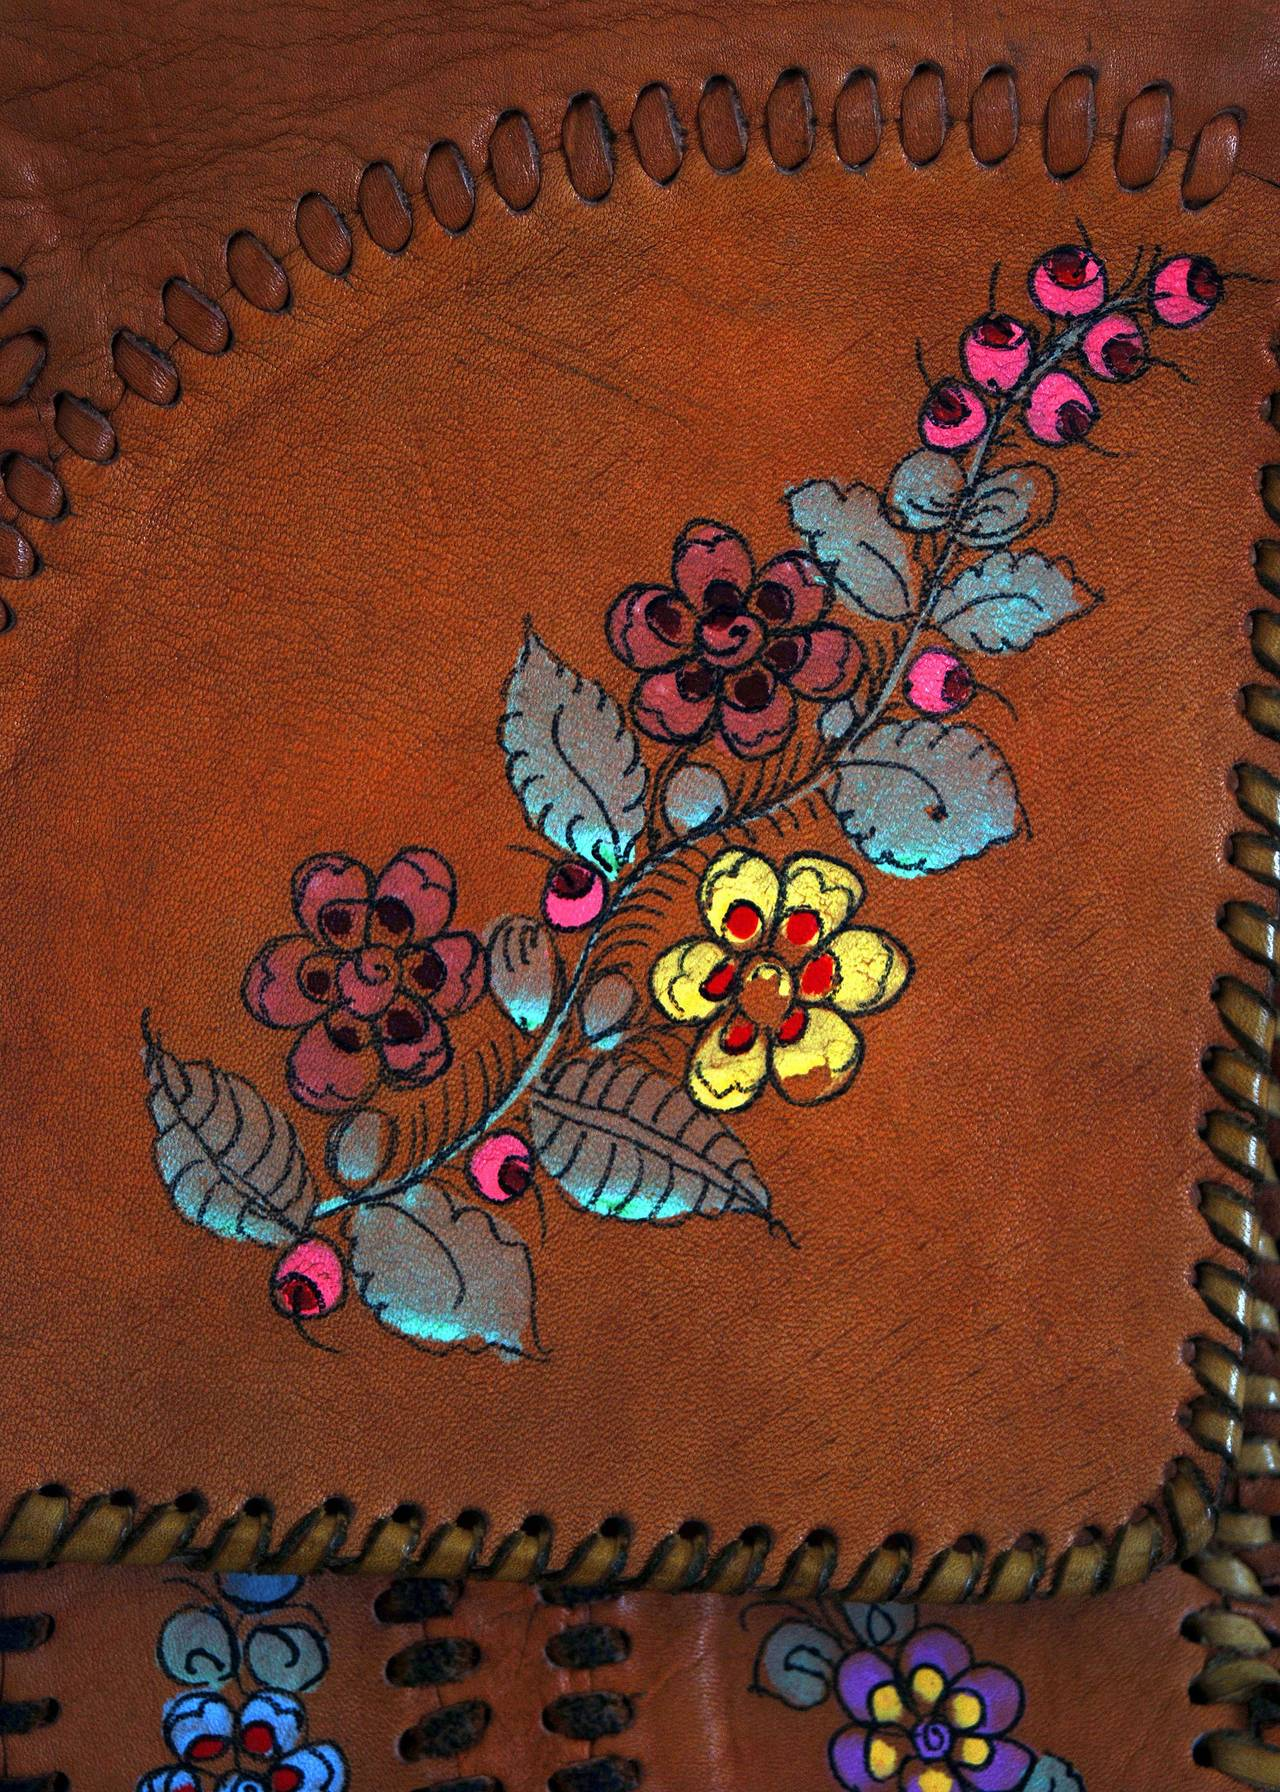 1970's Char Handpainted Whipstitched Leather Bohemian Hippie Messanger Bag Purse 3